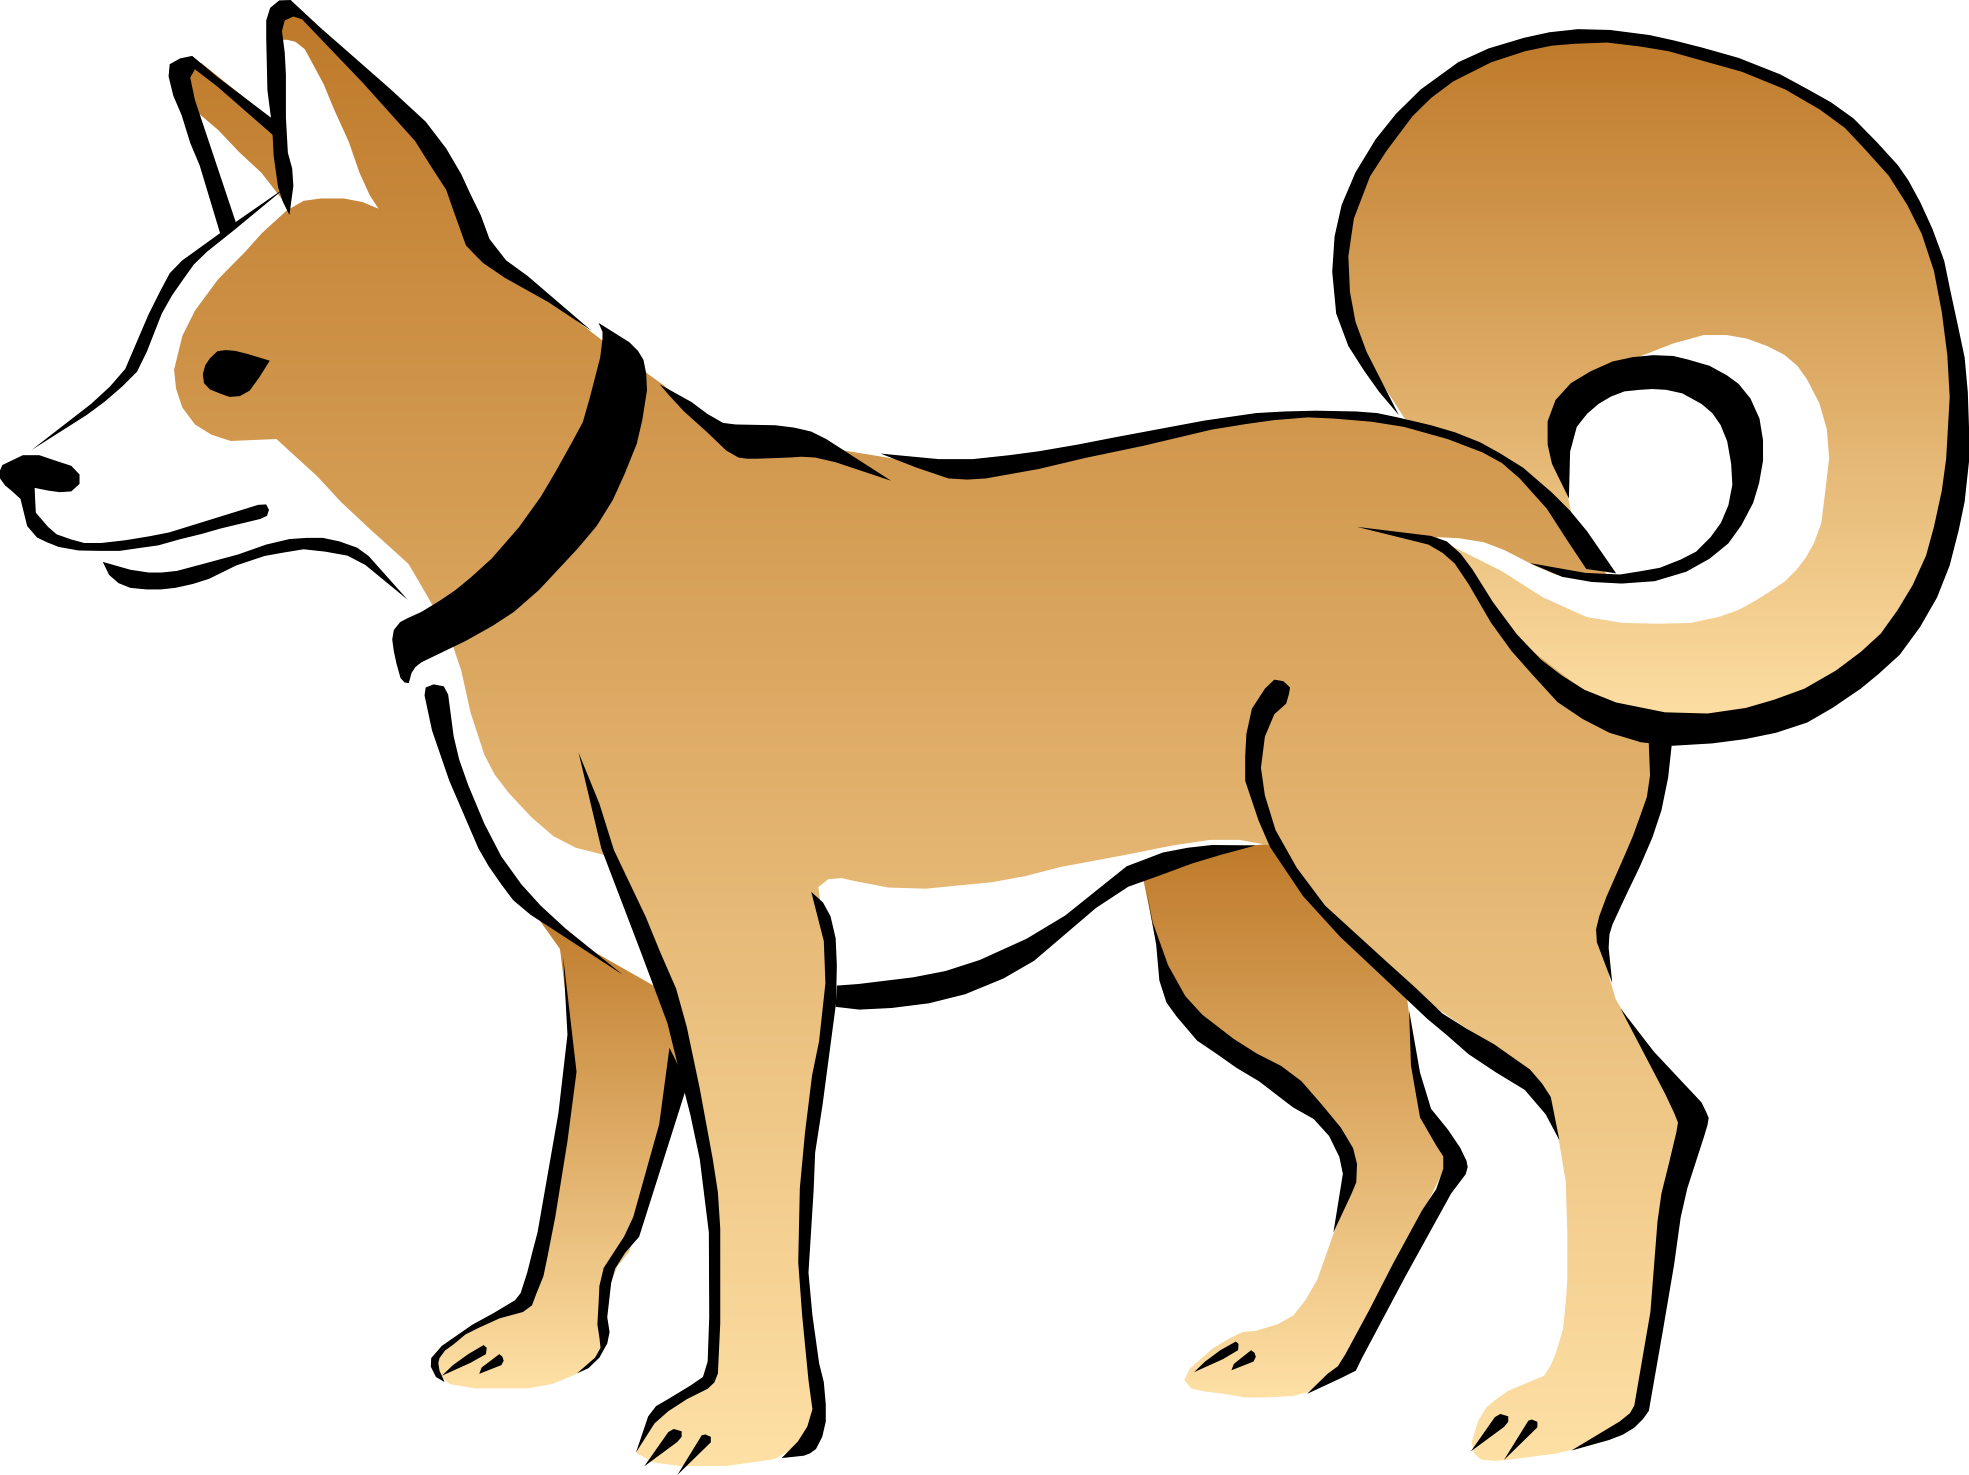 Chihuahua clipart transparent. Pencil and in color